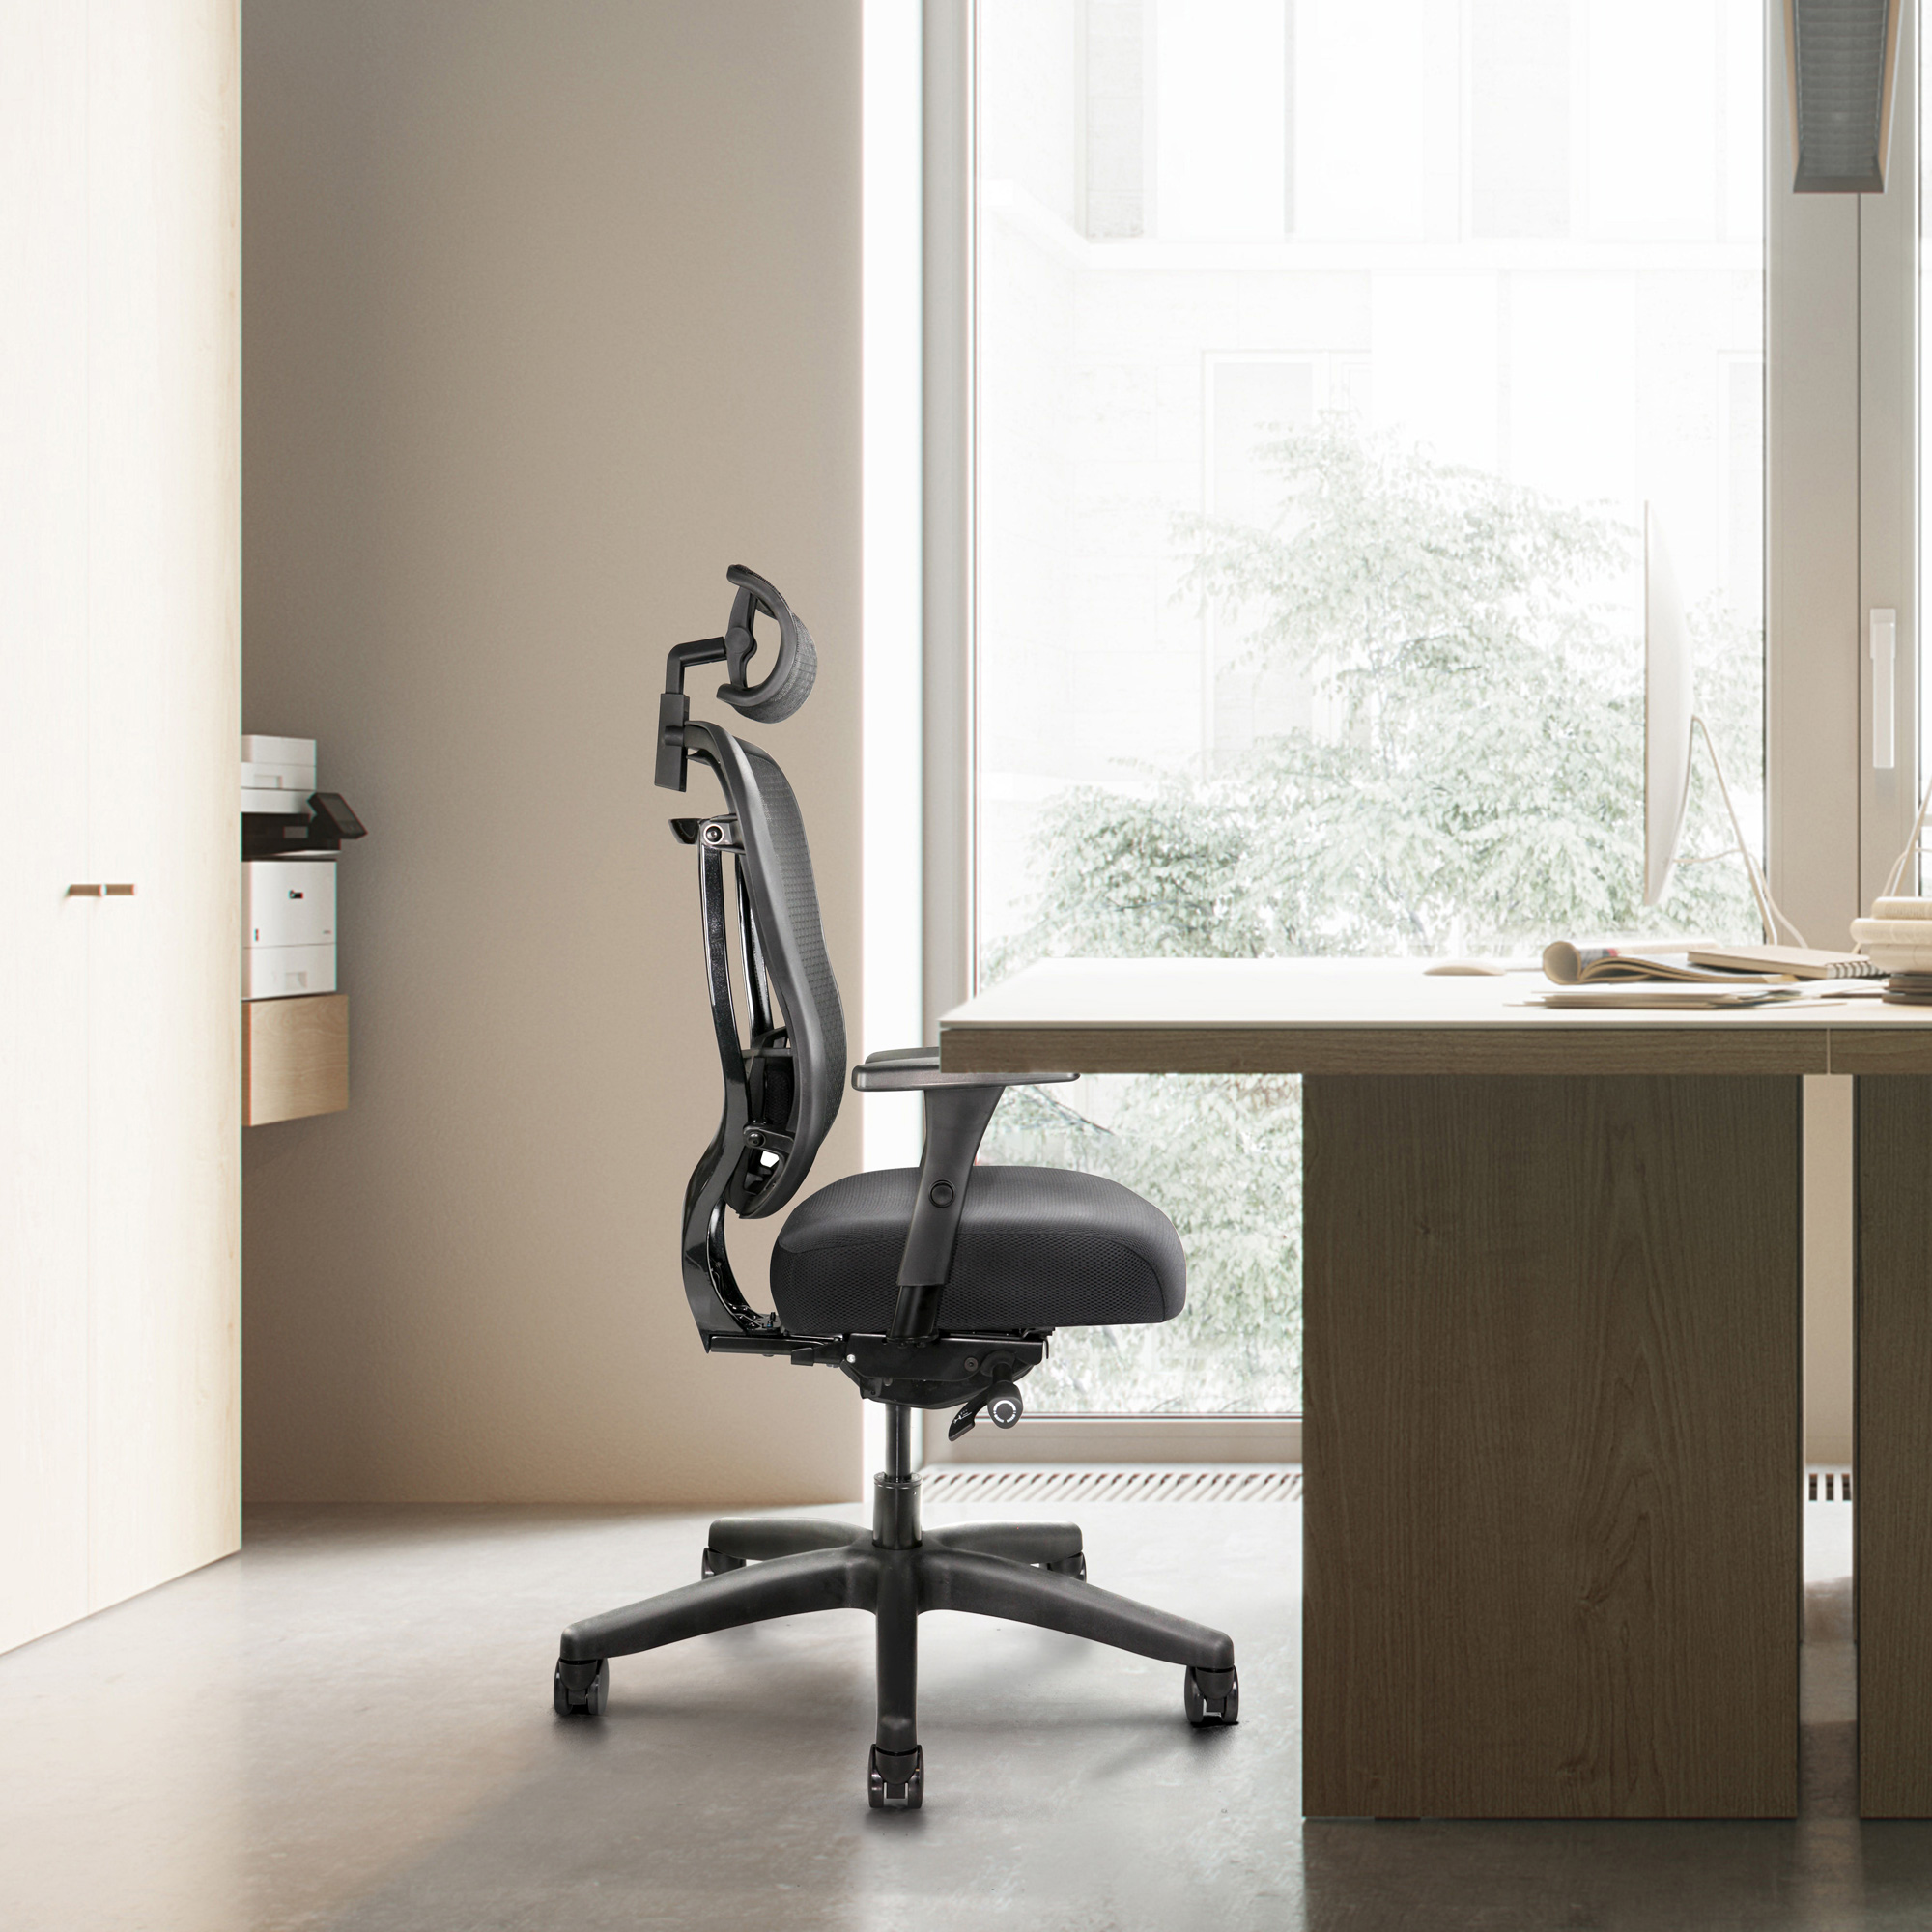 Rika Task Chair for home office